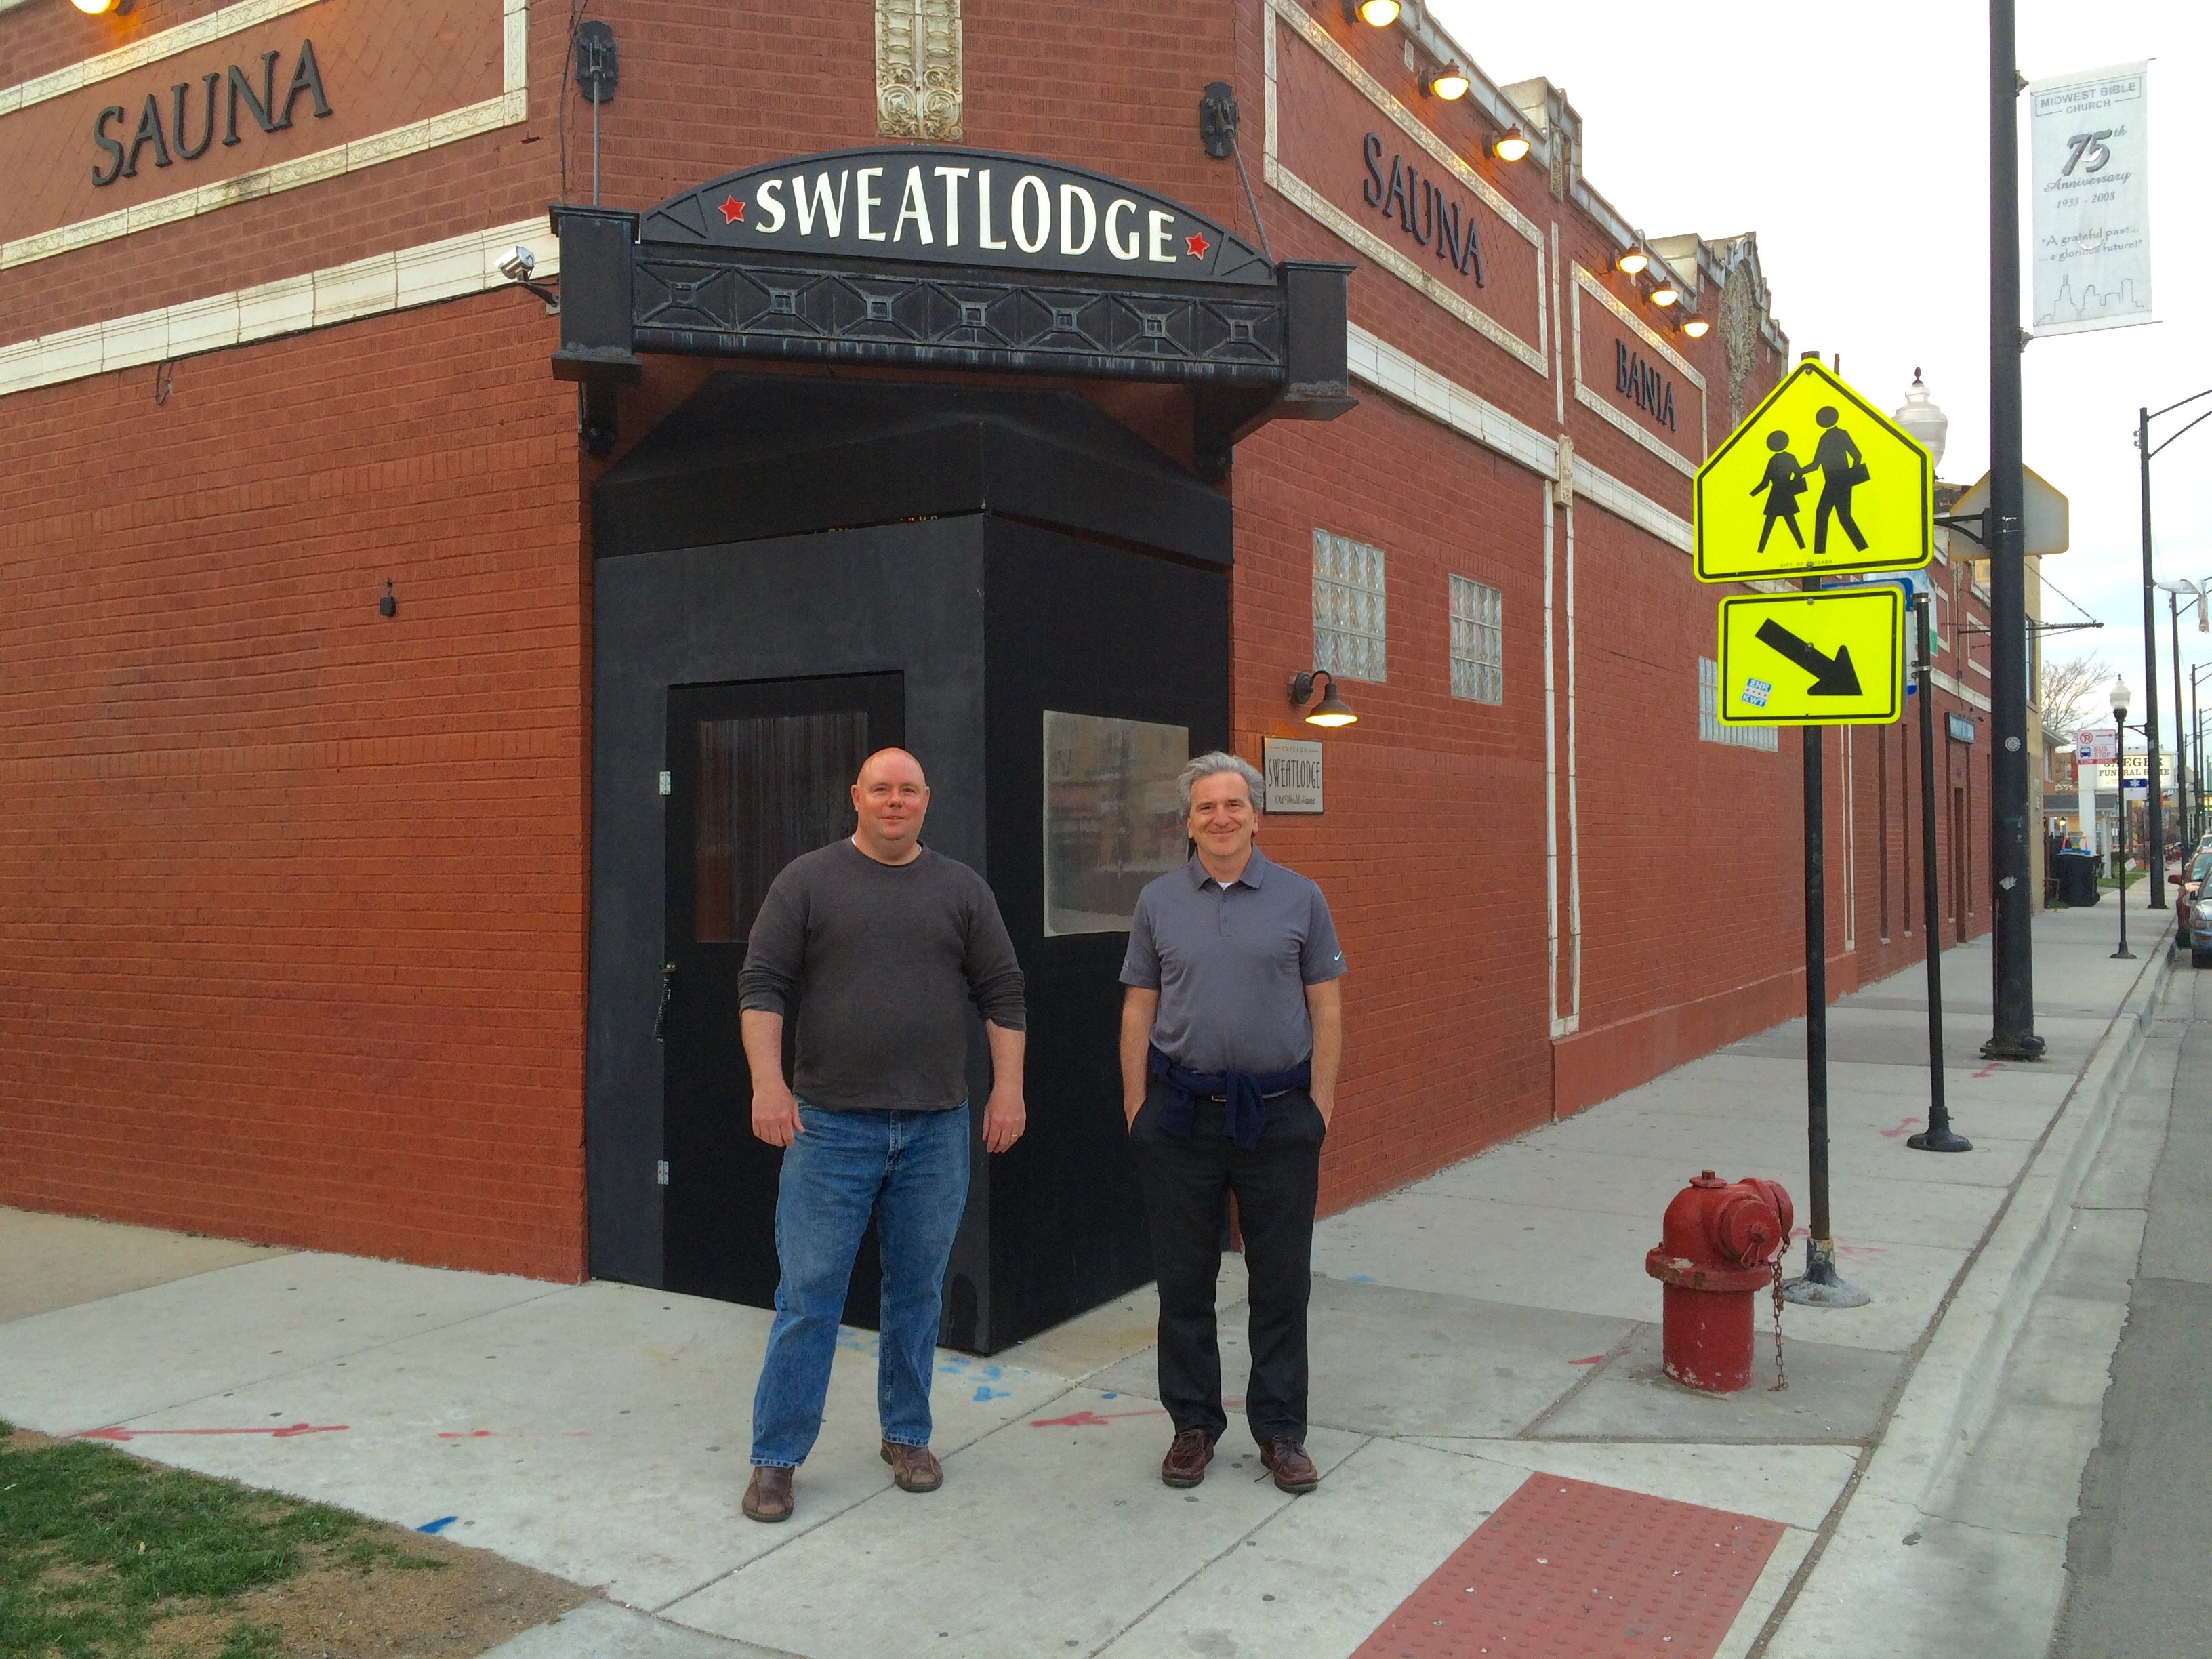 Outside Chicago Sweatlodge, Kevin (left) and Glenn check in with Bill Trotter, GM.